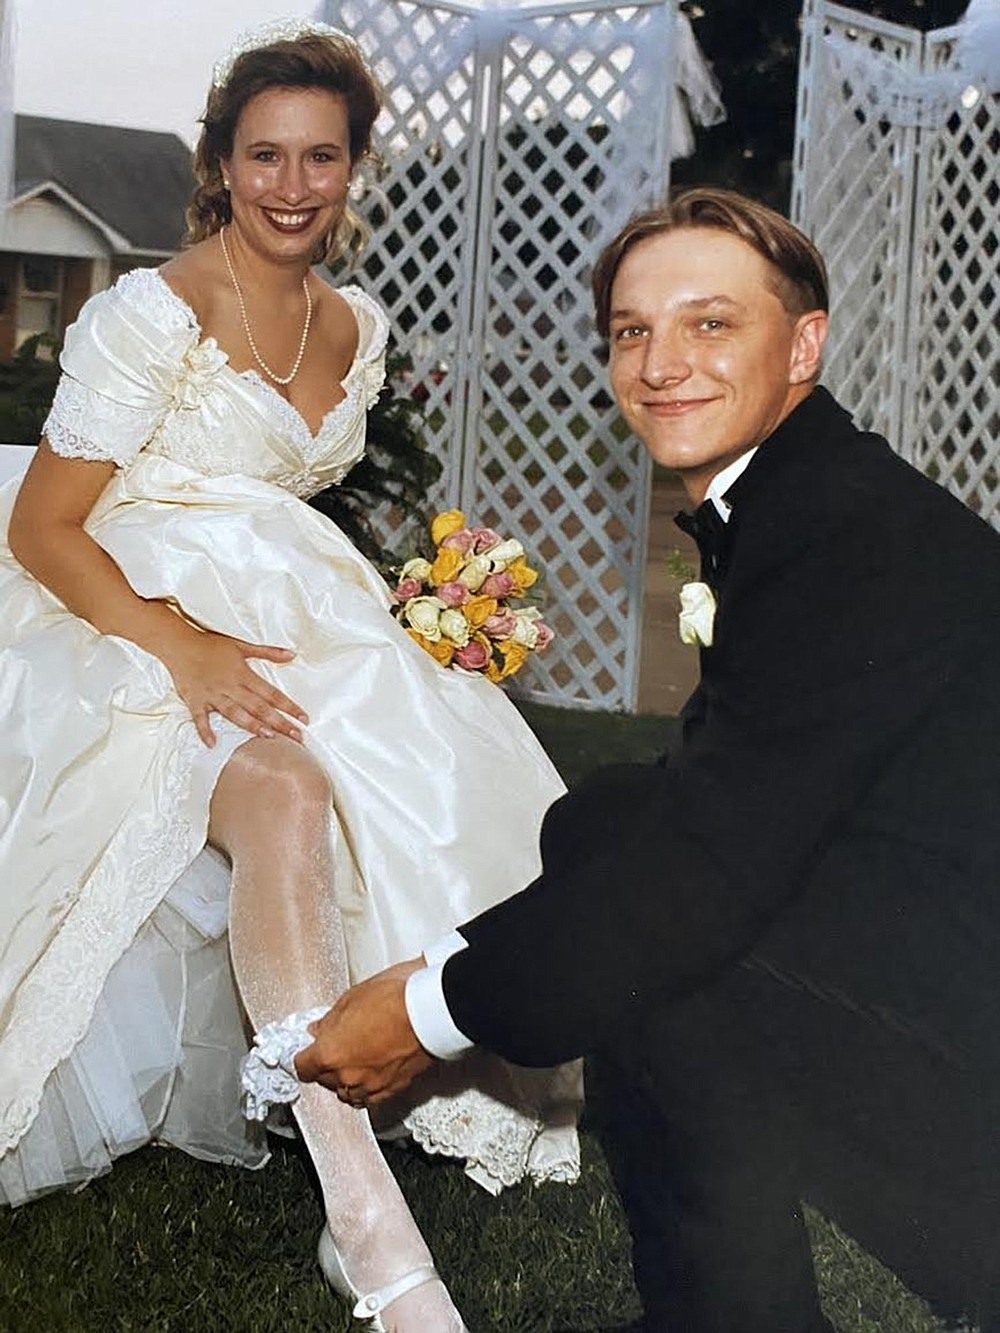 """Tim Carroll and Brandy Rennicke were married on June 29, 1996. Tim's muscles caught Brandy's attention, but his smarts and sense of humor captured her heart. """"Once I met him, I realized how dang smart he is,"""" she says. """"I just needed to sit down and get to know him."""" (Special to the Democrat-Gazette)"""